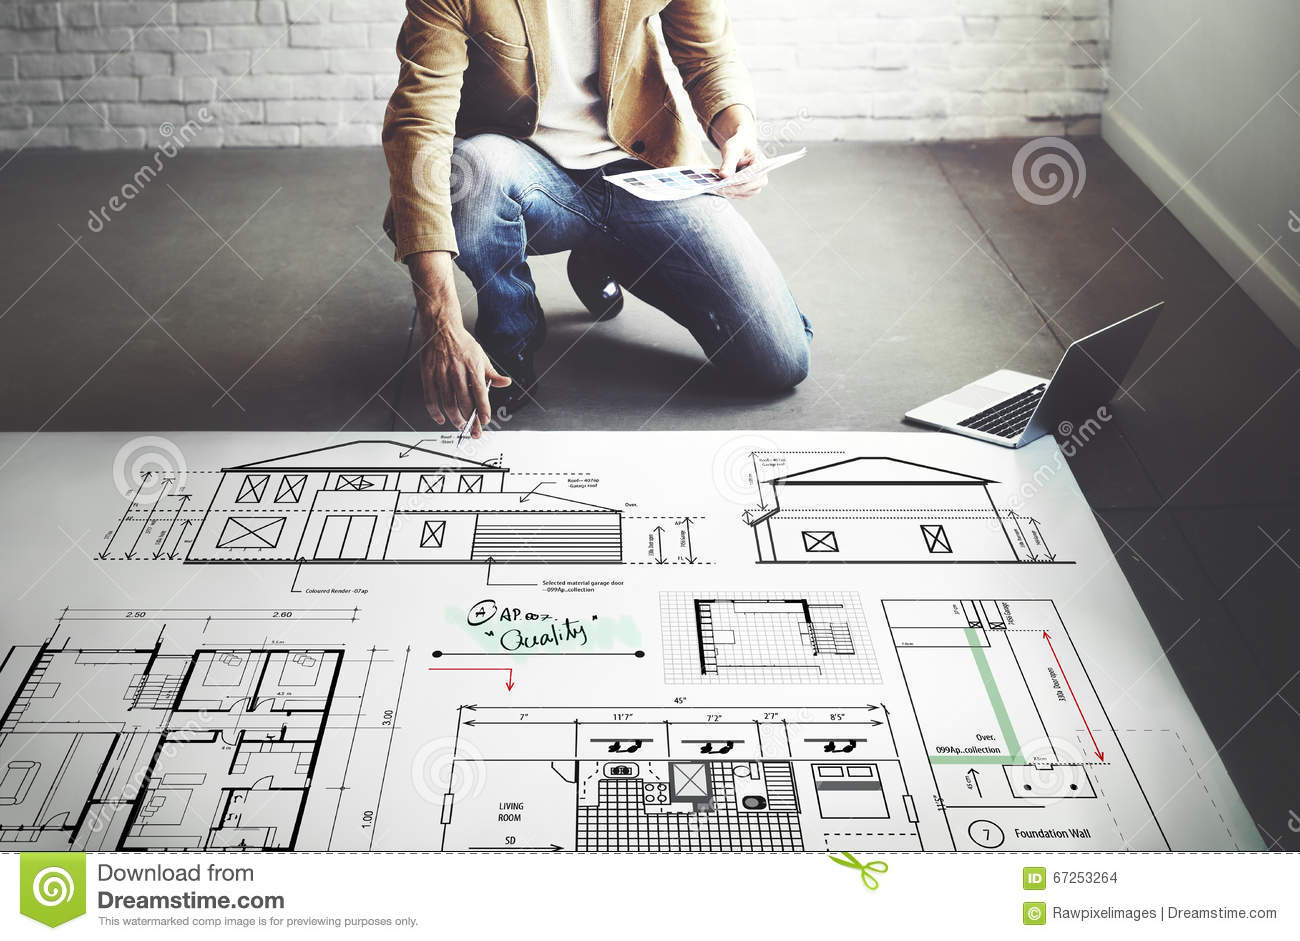 Blueprint Architect Construction Project Sketch Concept Stock Photo